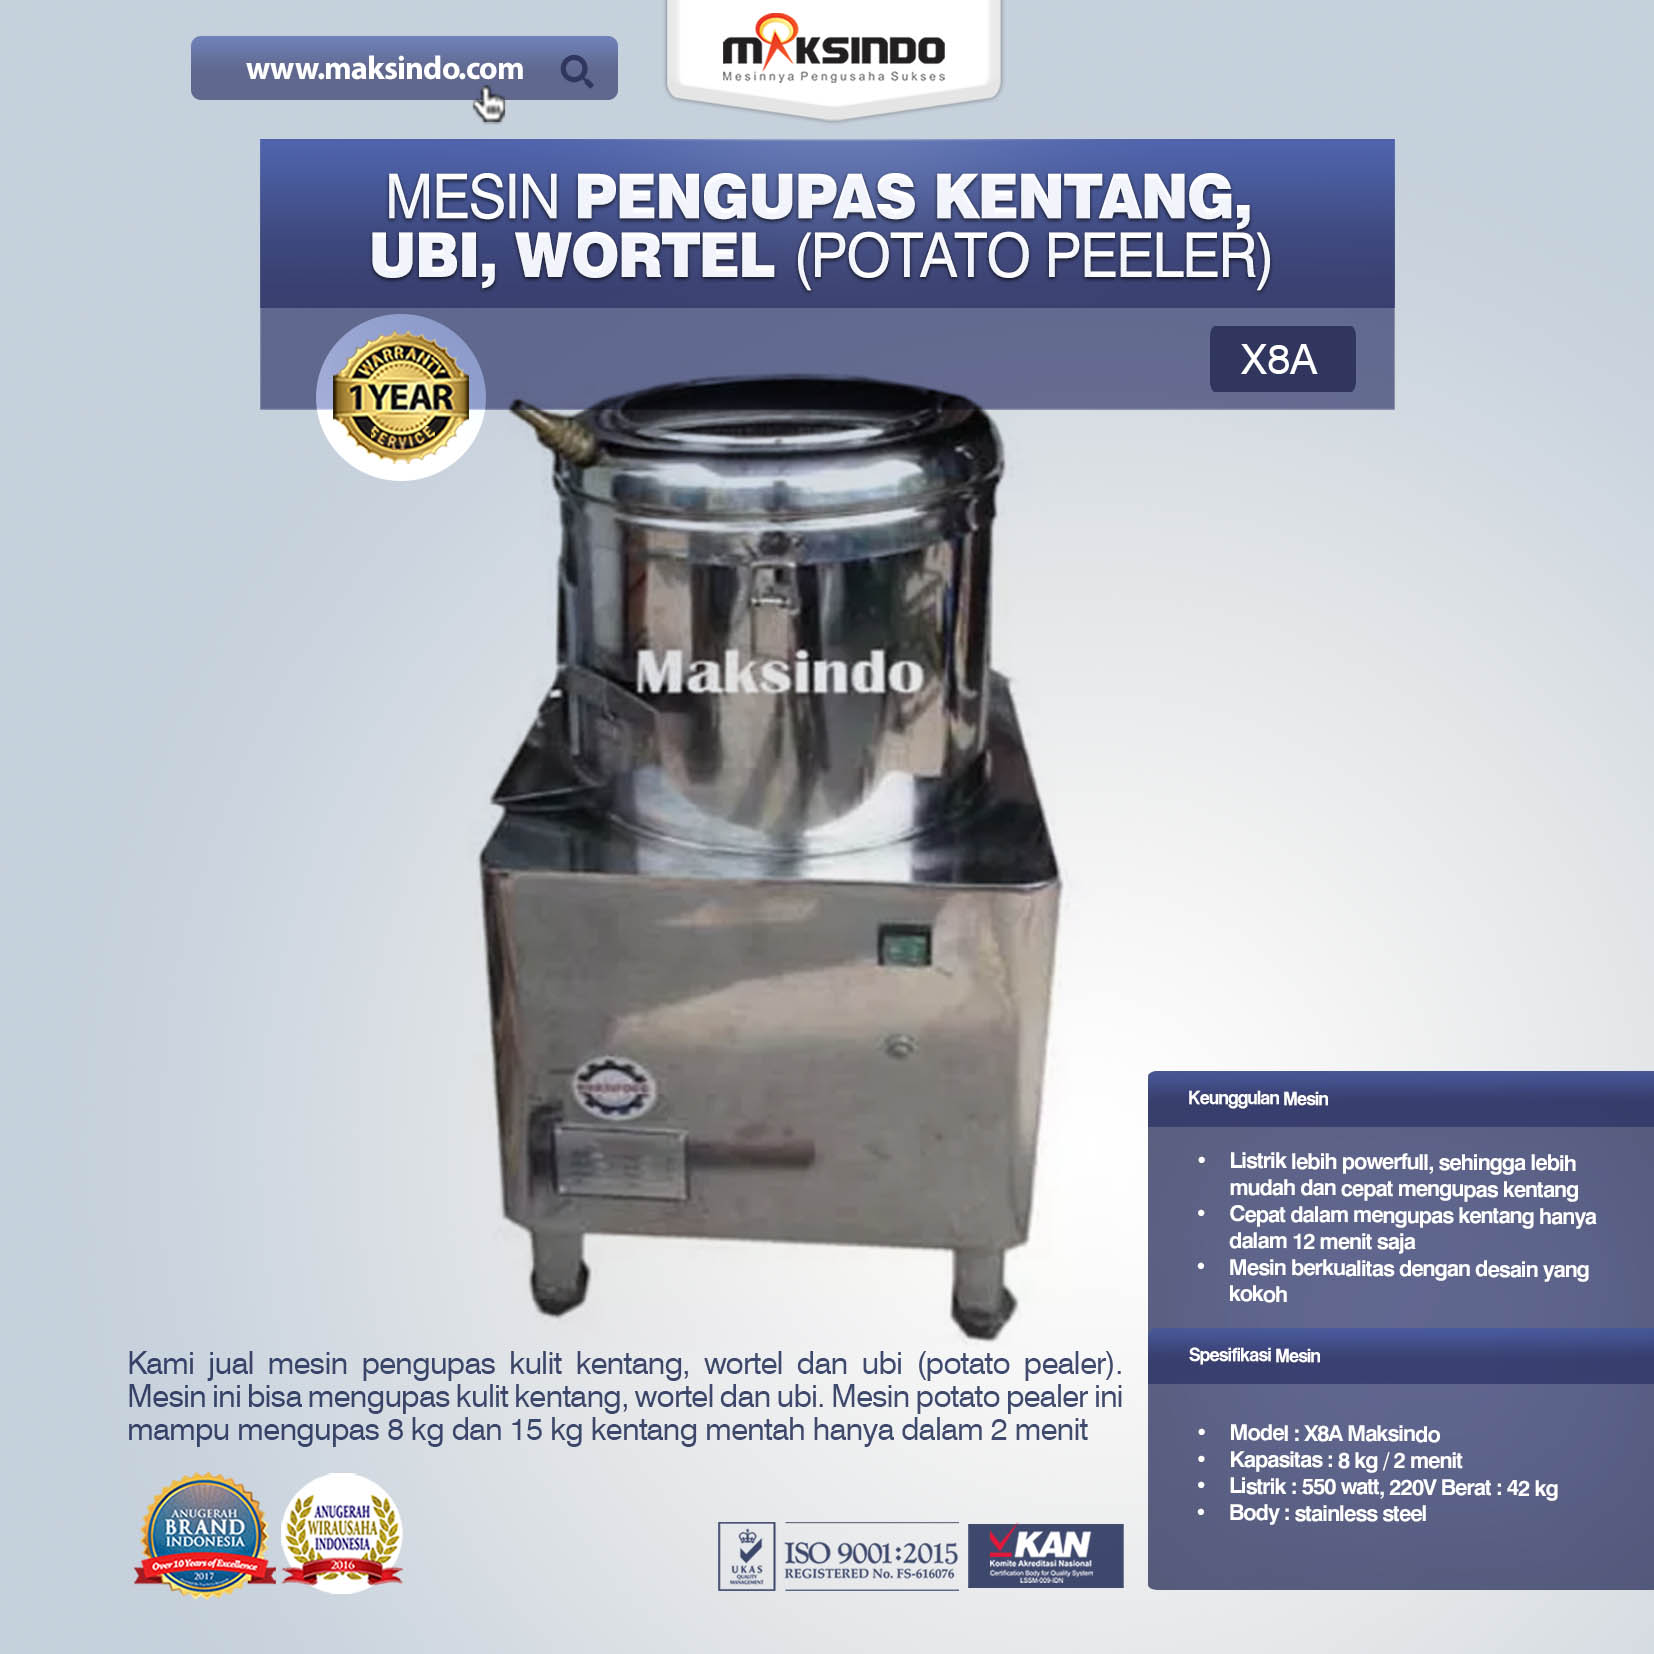 Mesin Pengupas Kentang, Ubi, Wortel (Potato Peeler) X8A